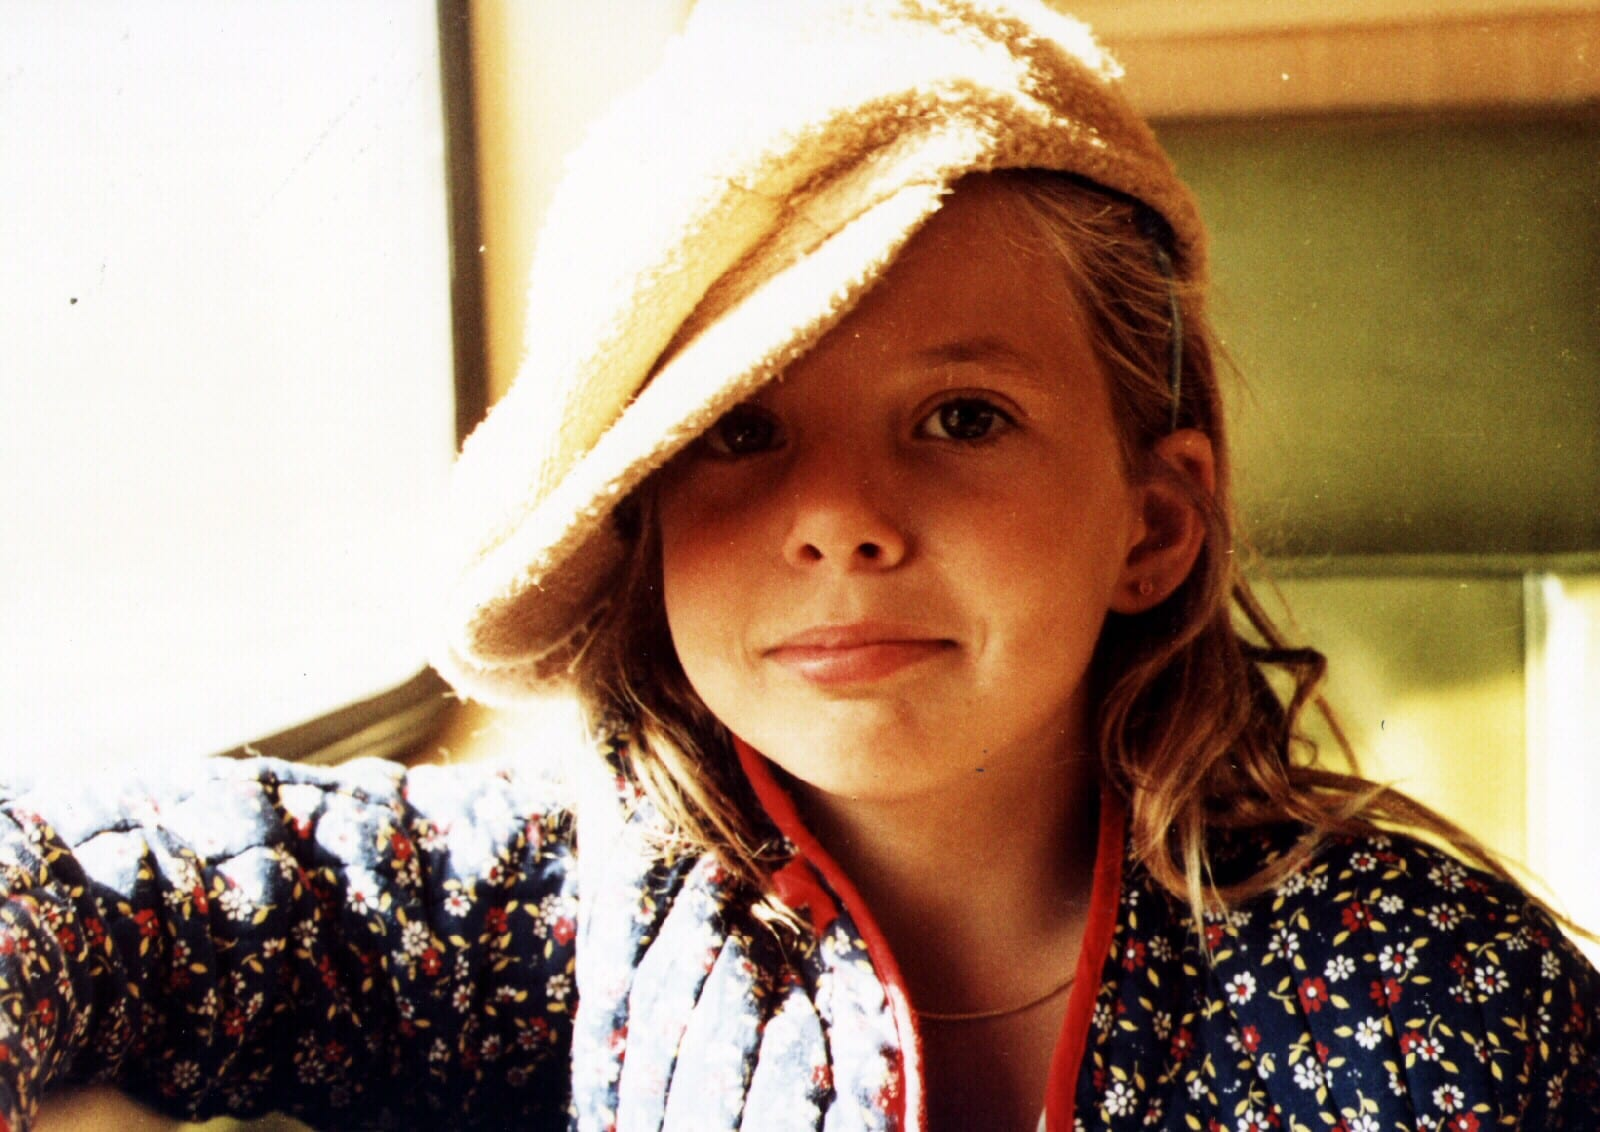 Family supplied photo Samantha Knight (9) of Bondi, who disappeared 19/08/1986.